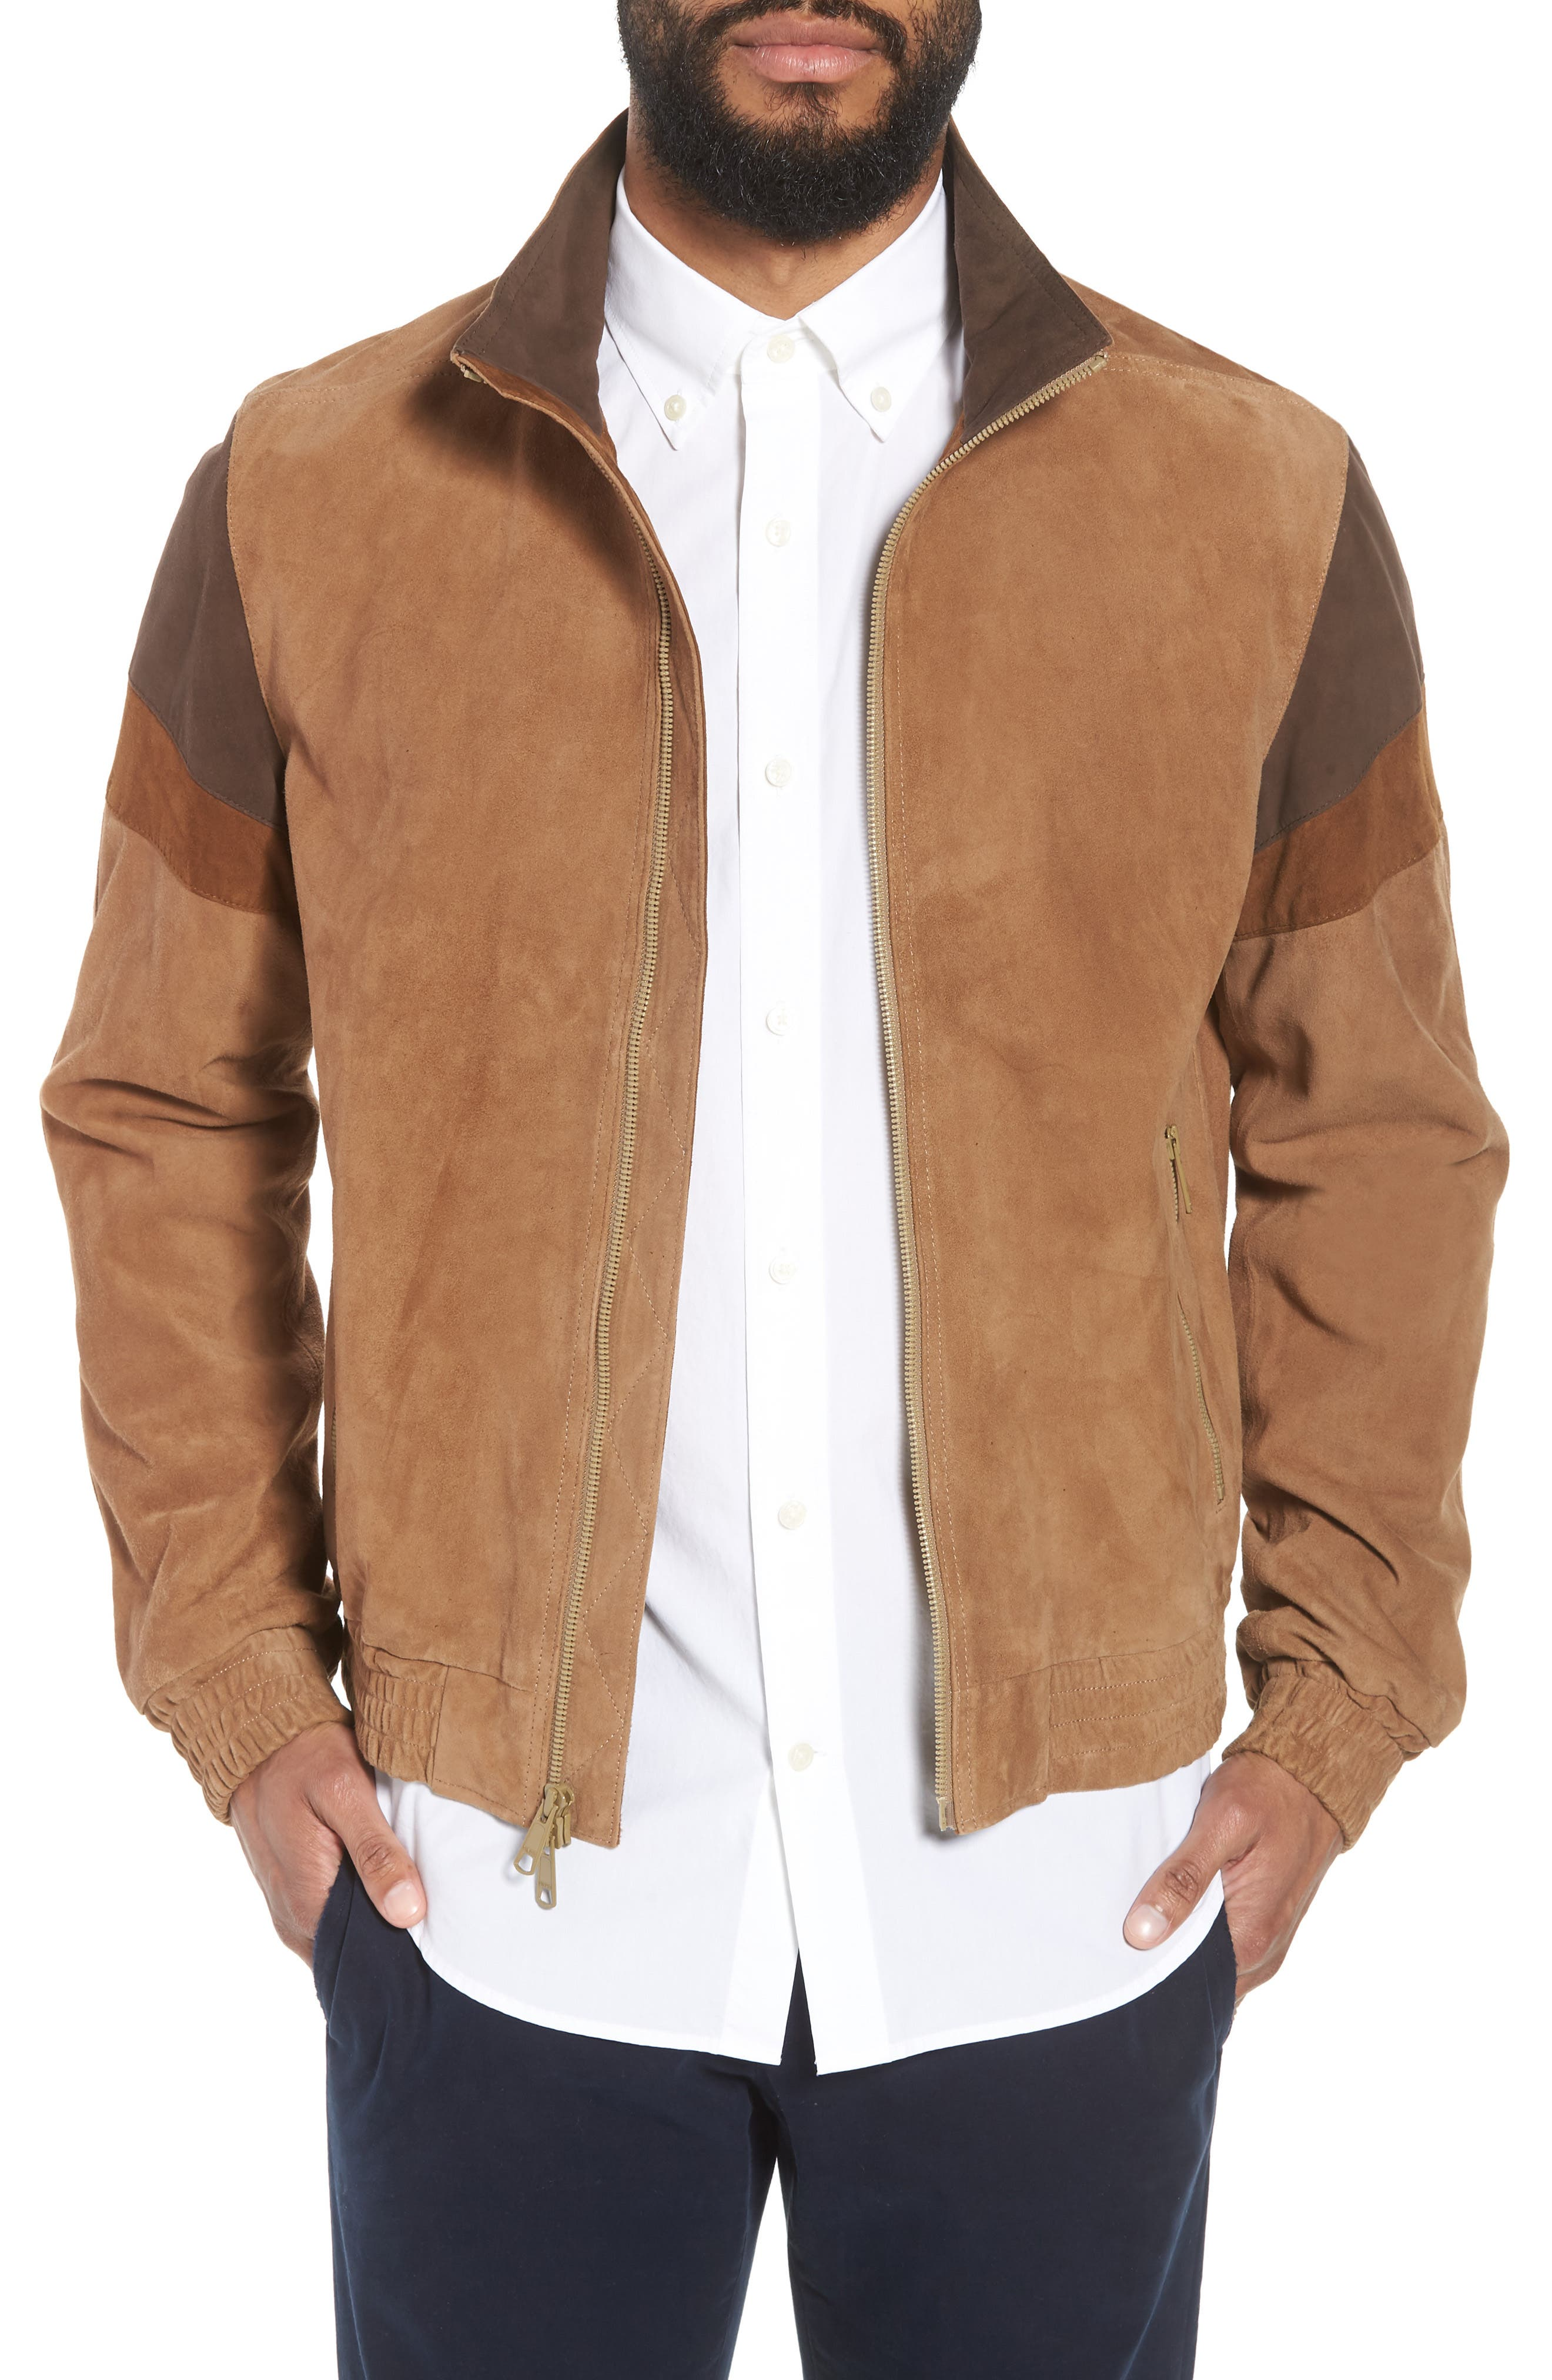 Colorblock Leather Track Jacket,                         Main,                         color, 250